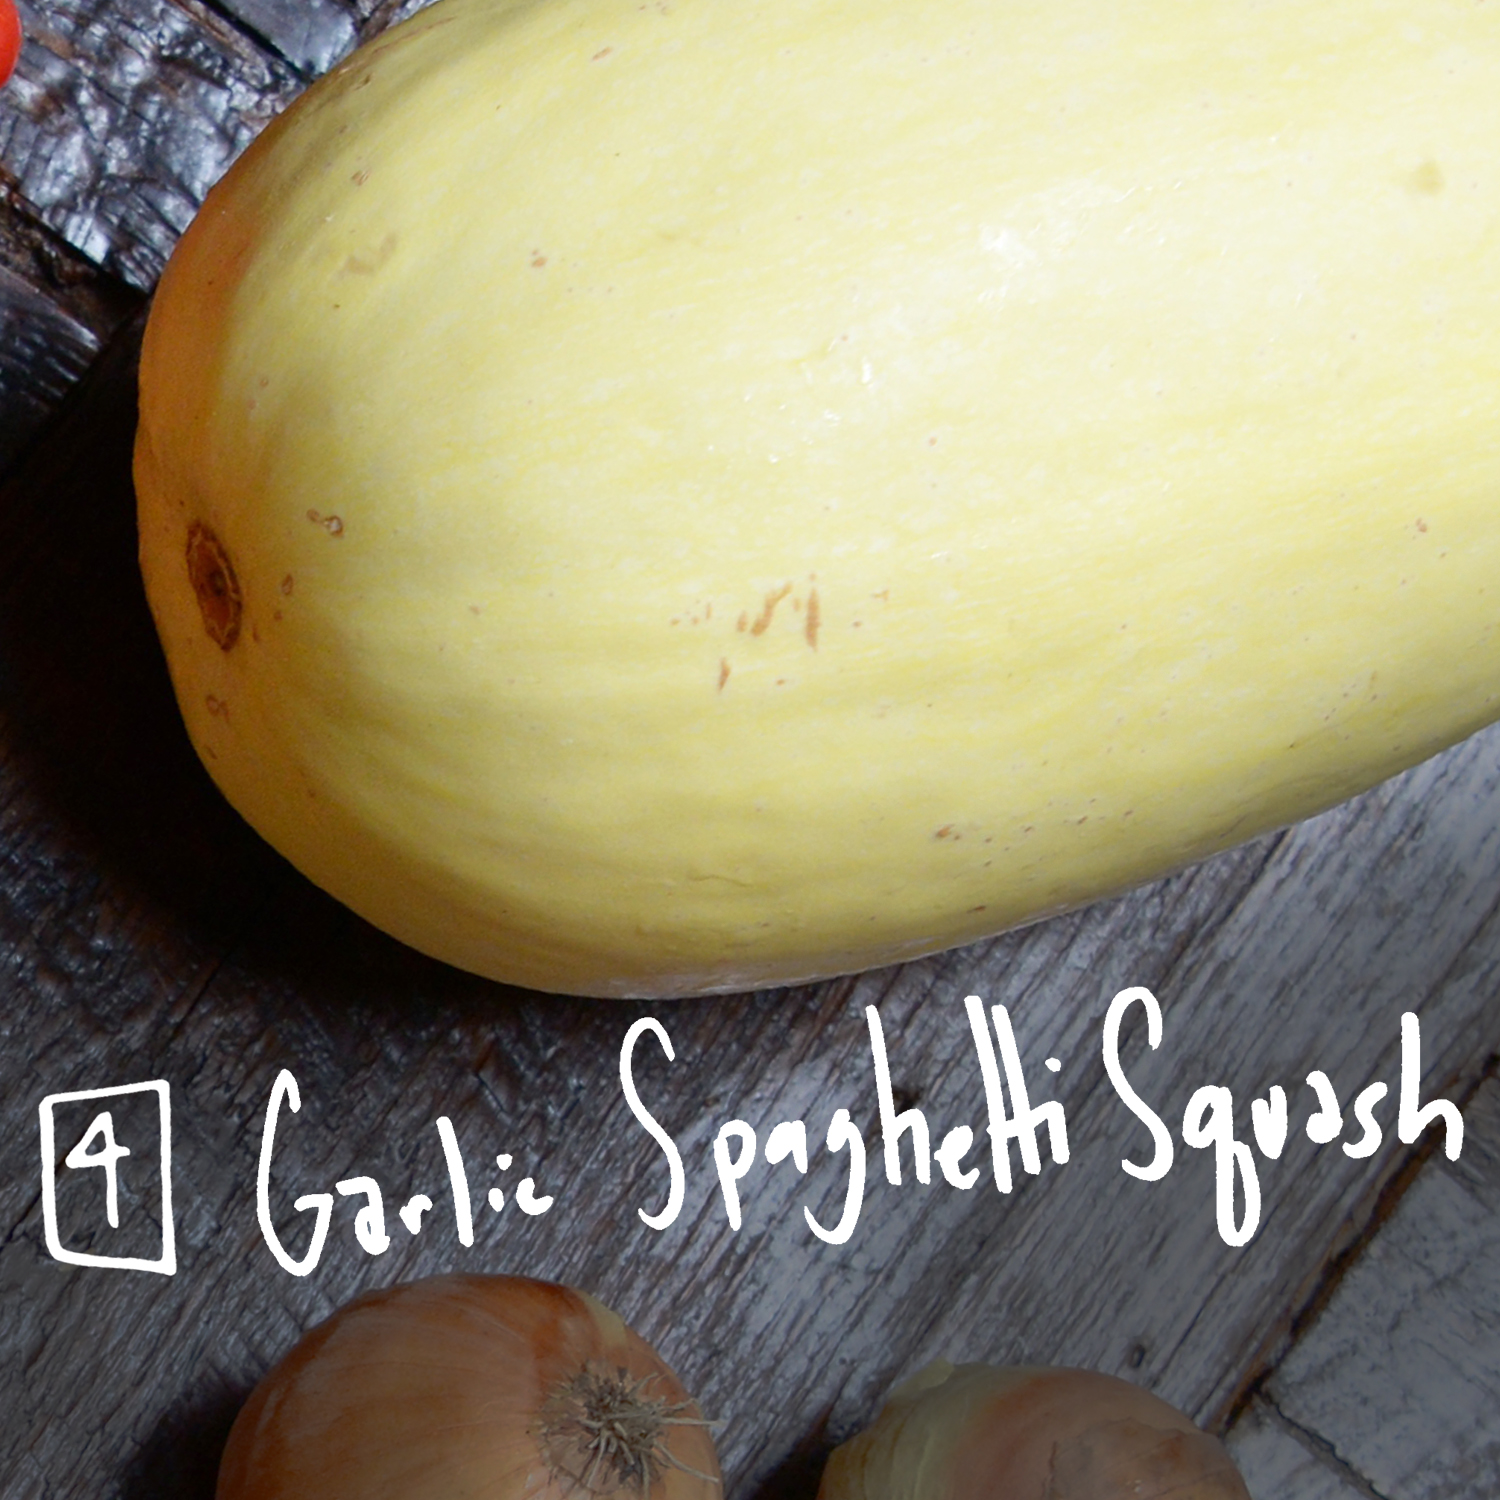 We love recipes that look fancy, but are not hard to make. This gives basic roasted squash a tremendous flavor boost. - Find the recipe at: Pinch of Yum